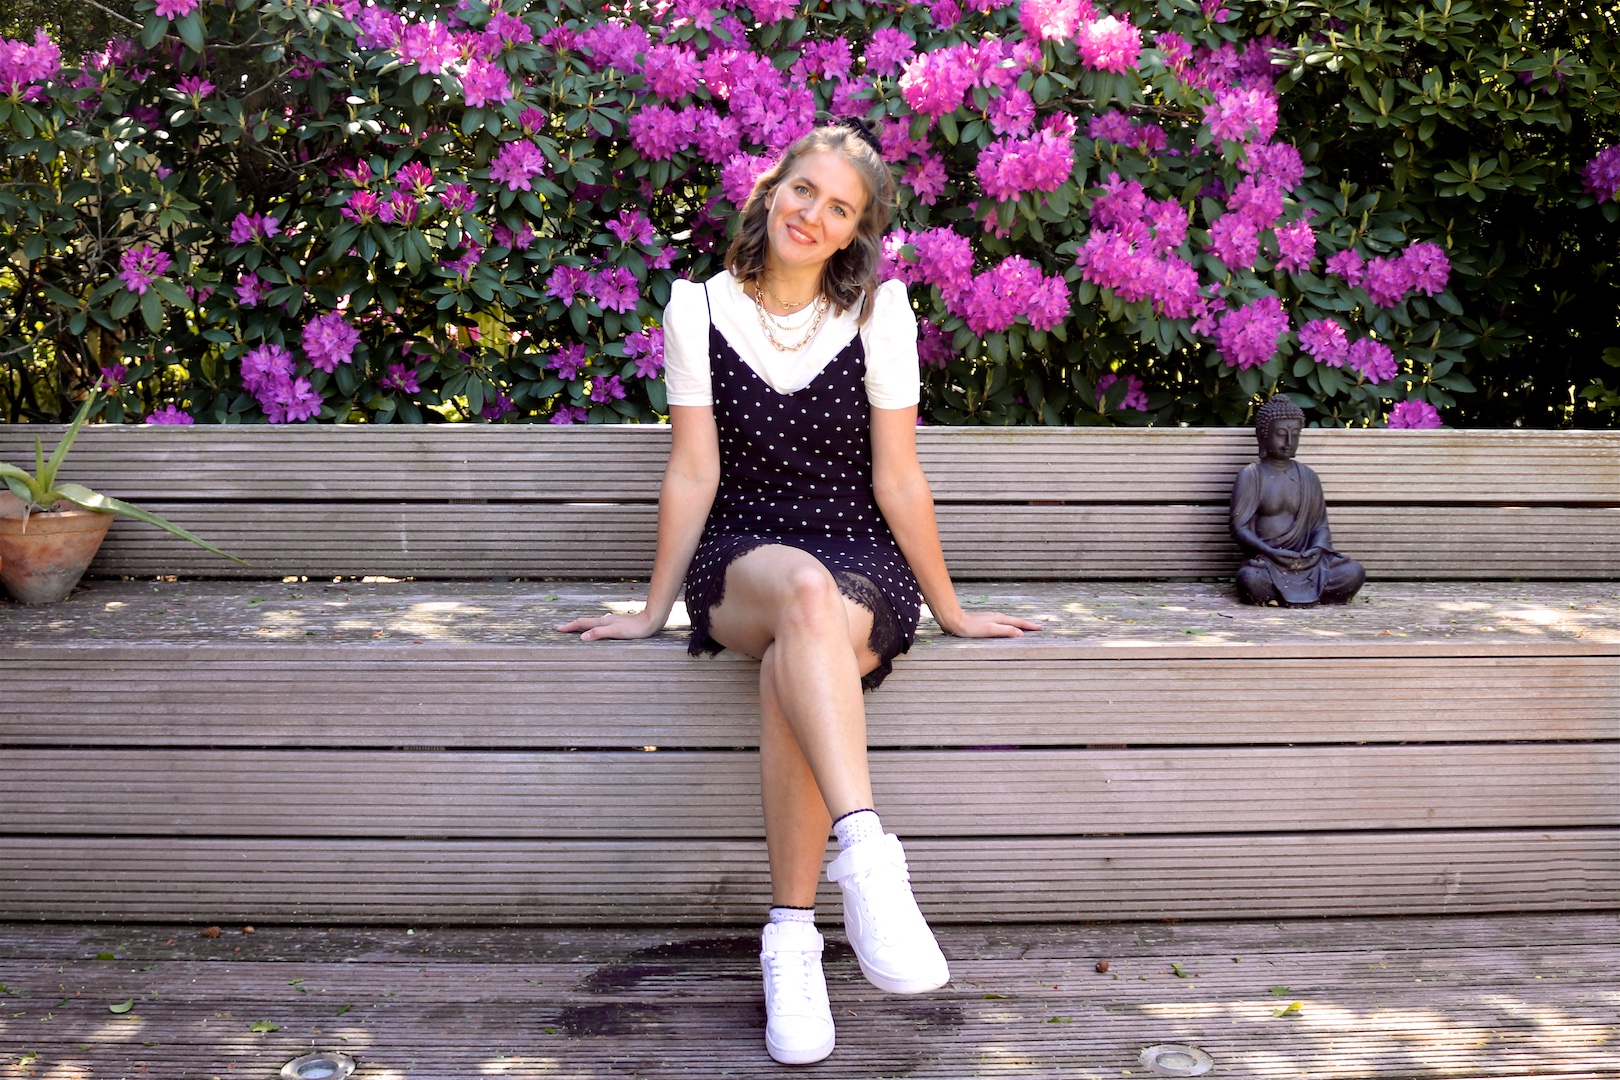 Purple Flower Rain. Fashion and Style Blog Girl from Heartfelt Hunt. Girl with blonde half-up half-down hairstyle and black velvet scrunchie wearing a polka dot slip dress, tee with puffed sleeves, statement necklace and Nike sneakers.